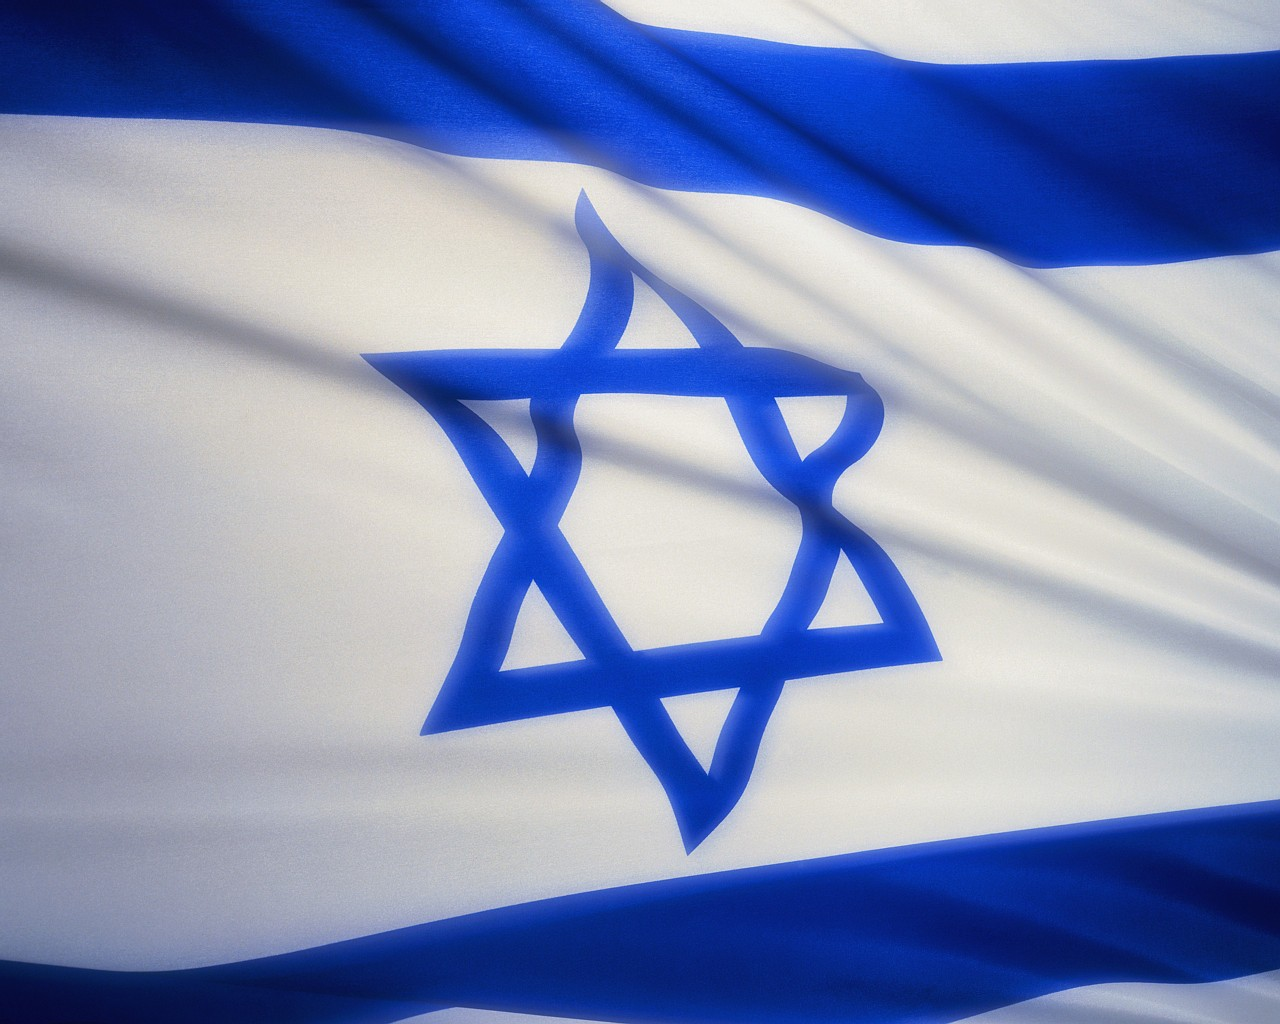 The Deconstruction and Complete Reset of Israel